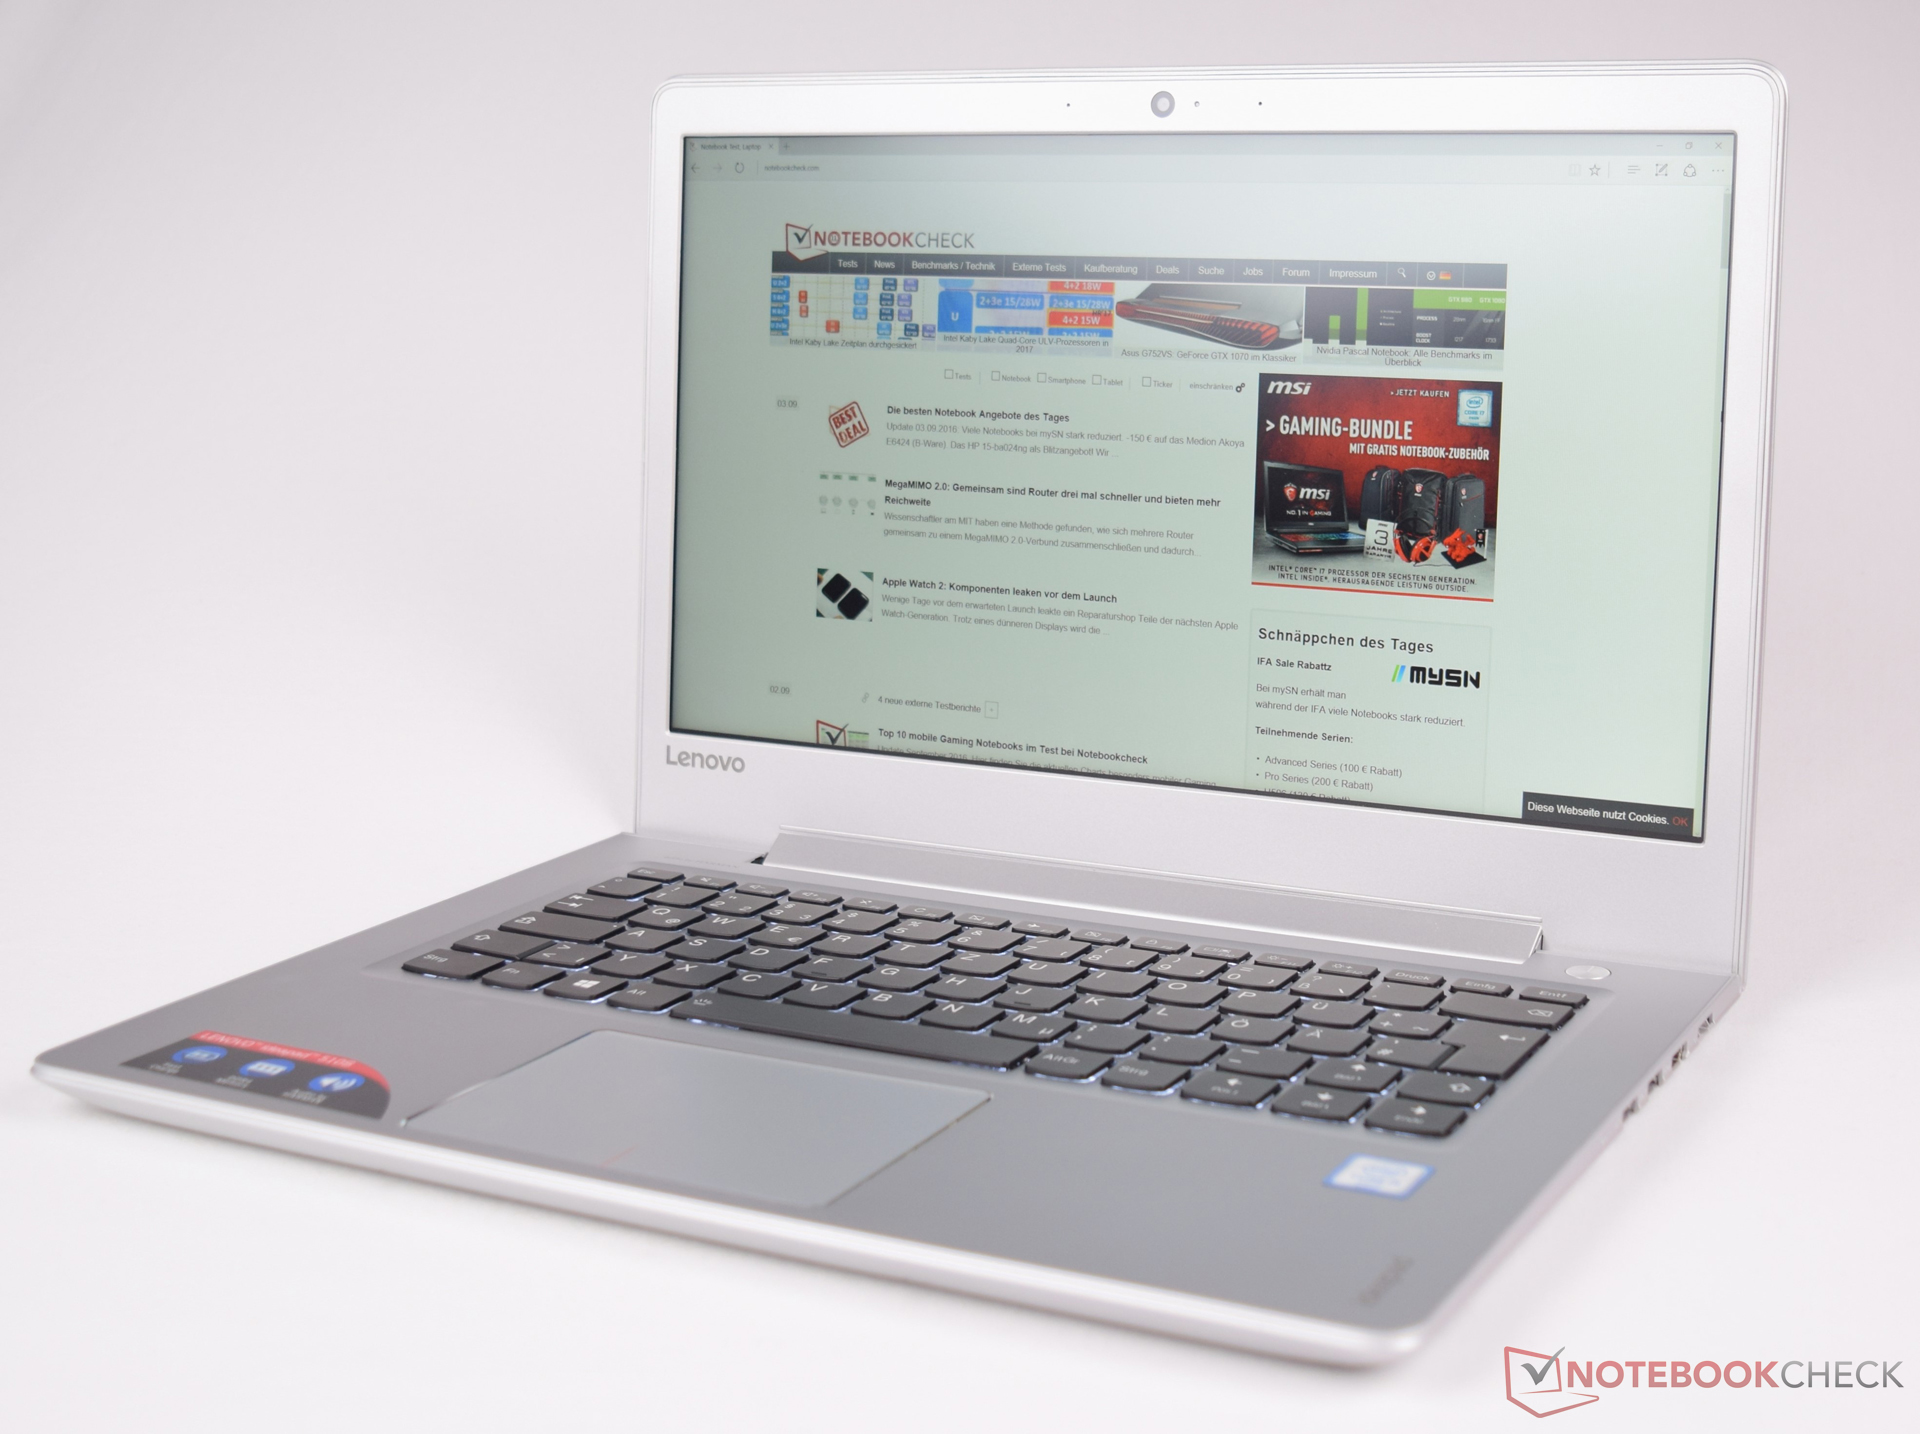 LENOVO IDEAPAD 500S-14ISK LITEON WLAN WINDOWS 7 DRIVERS DOWNLOAD